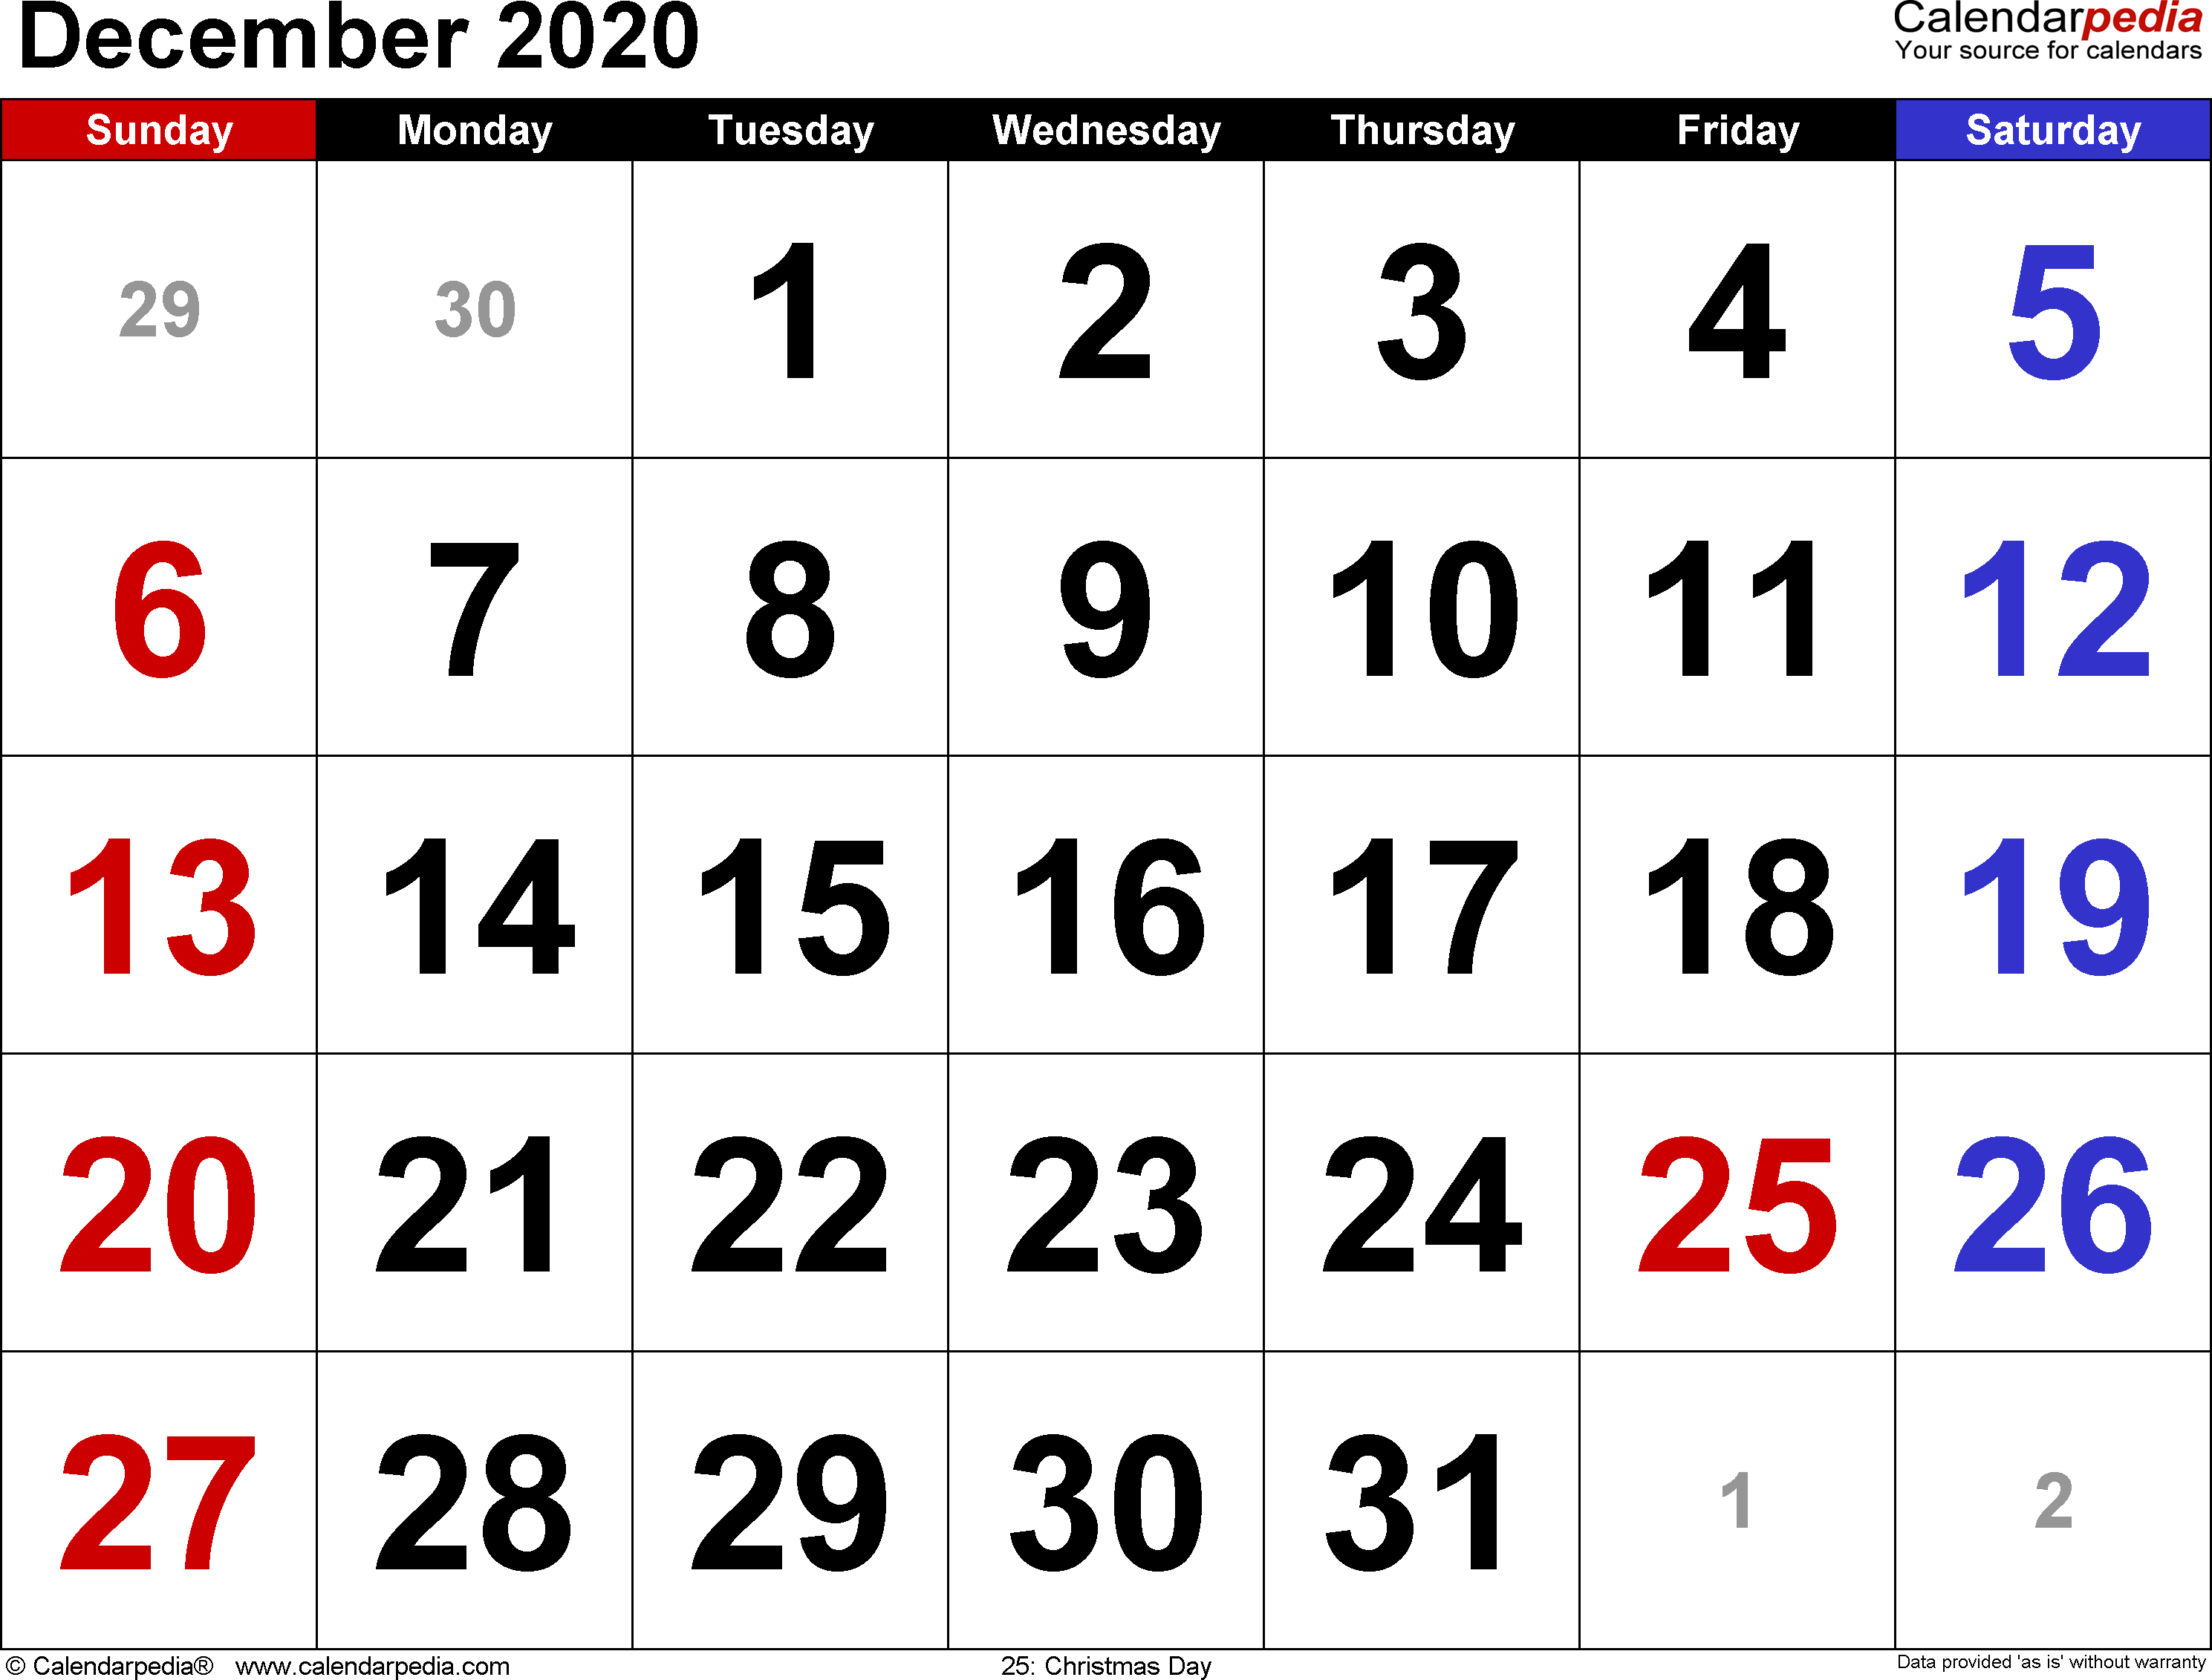 Calendar December 2020.December 2020 Calendars For Word Excel Pdf